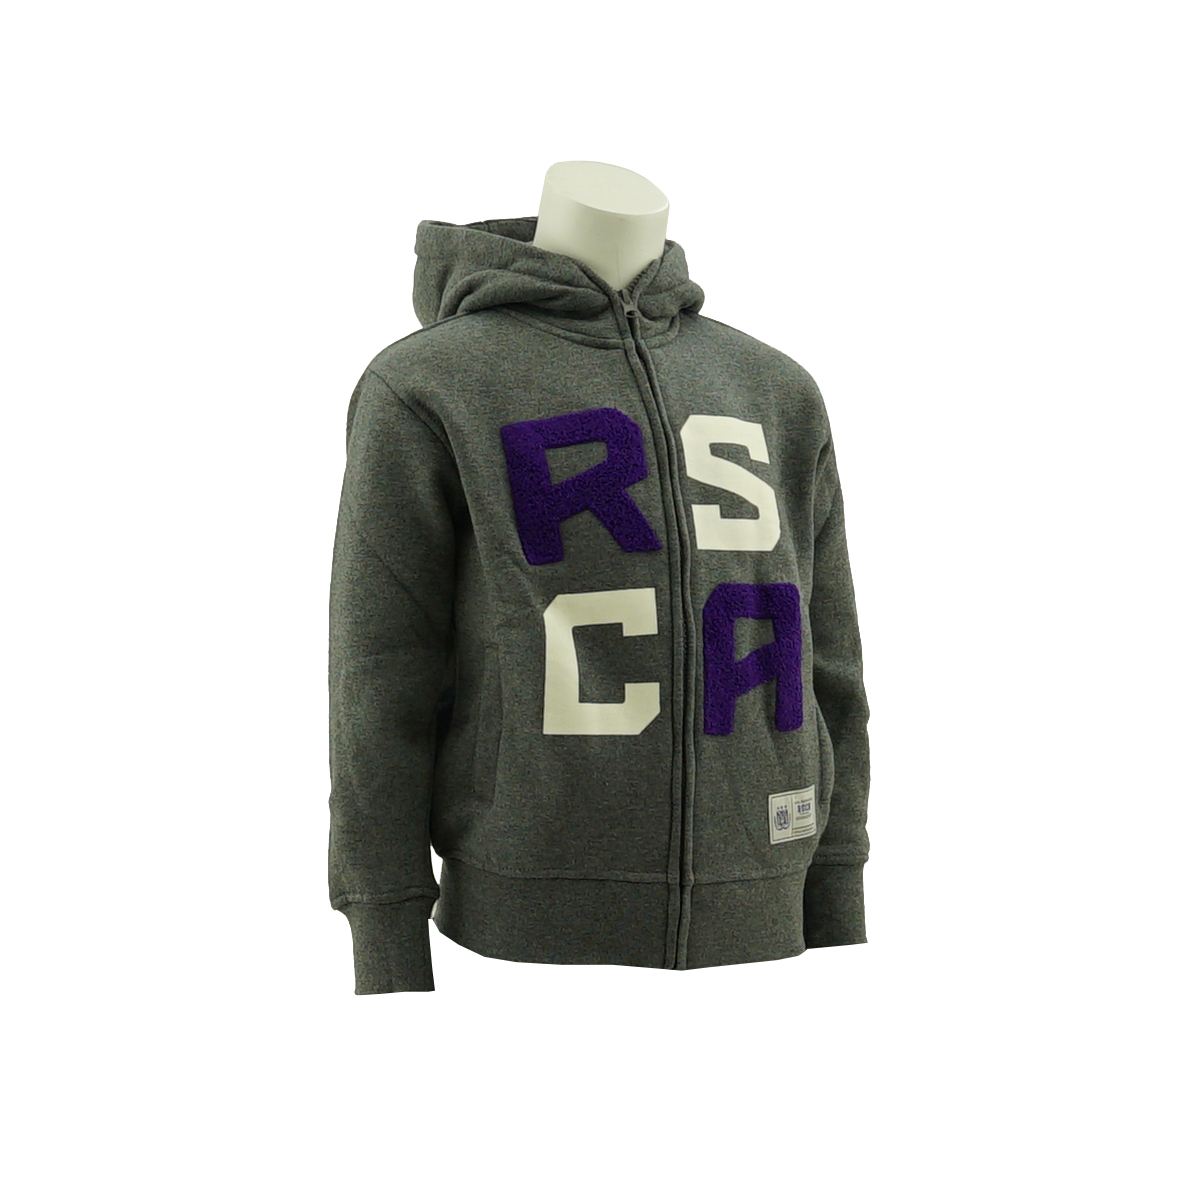 RSCA Hooded Sweatvest Kids Terry Letters